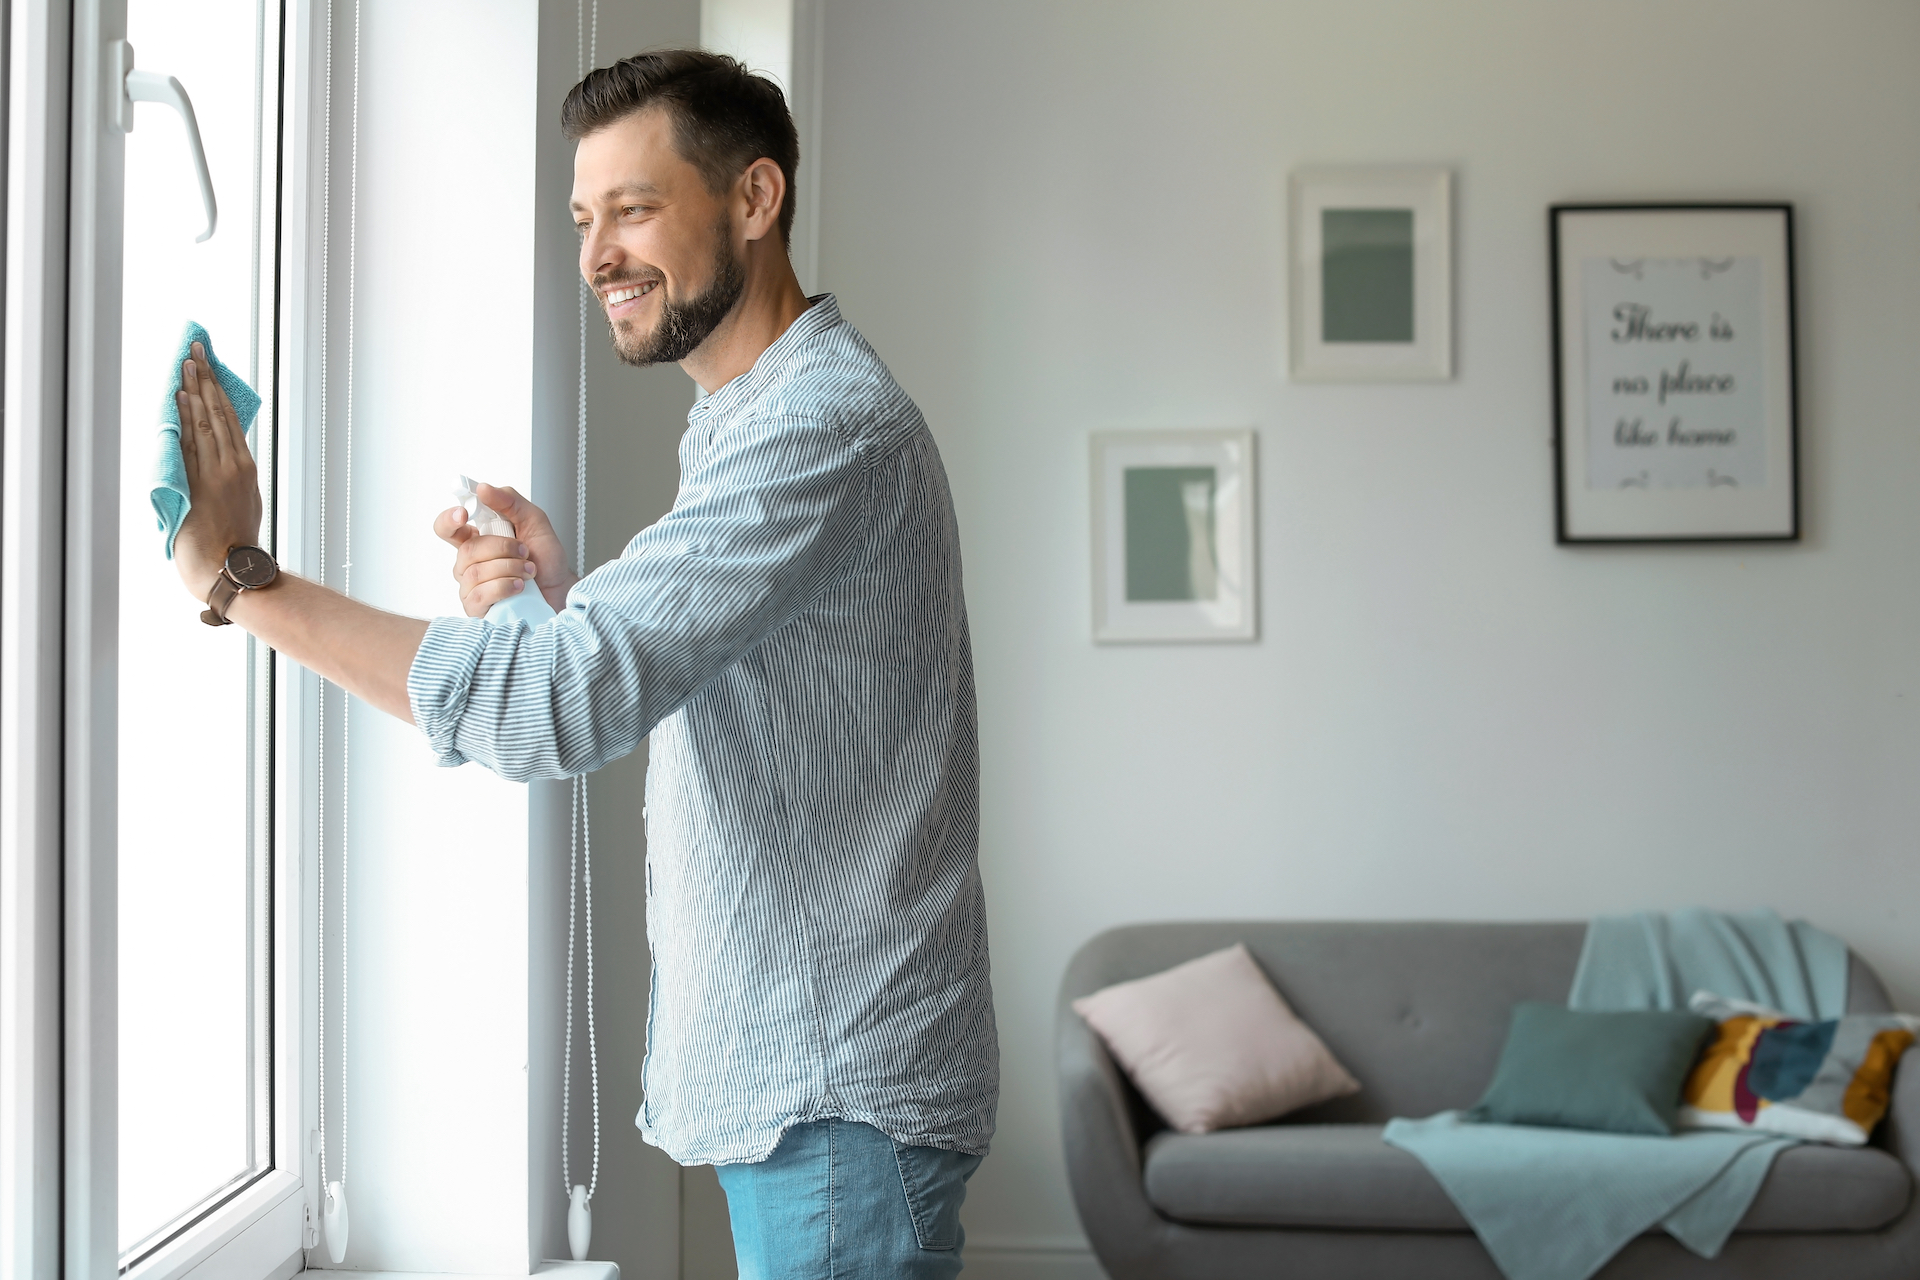 Man wiping glass window happily in his living room